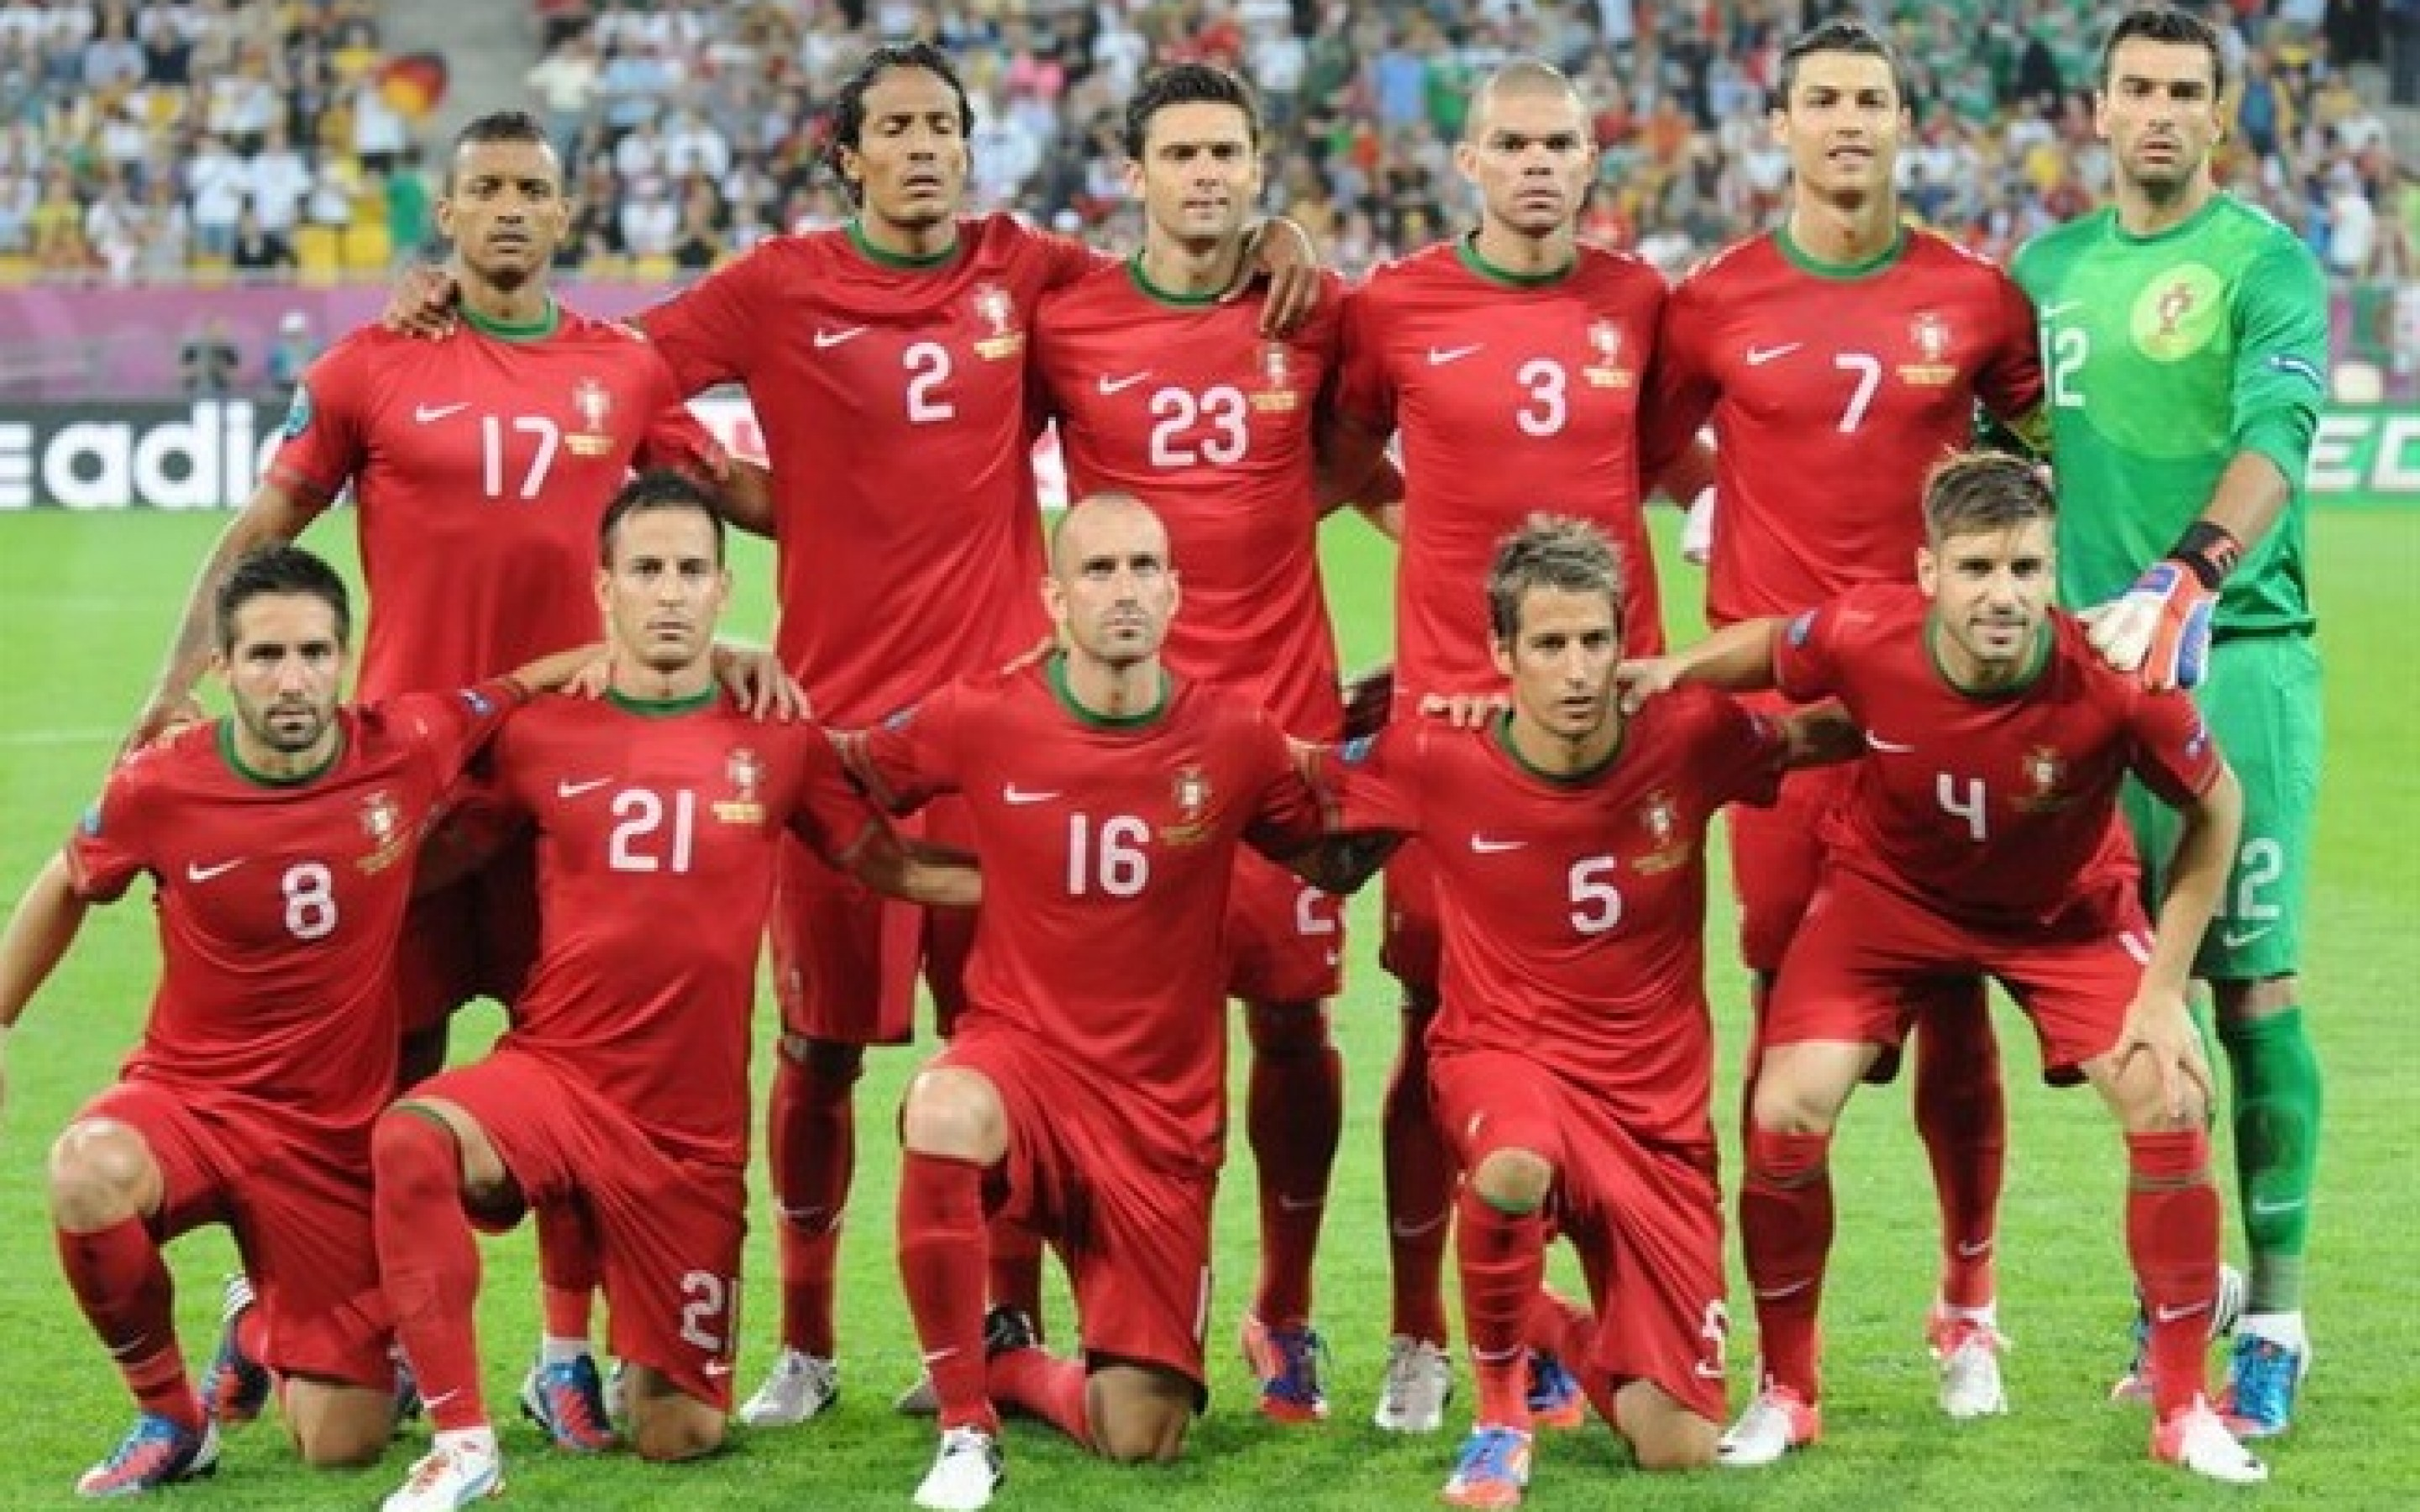 Portugal 2014 Brazil World Cup